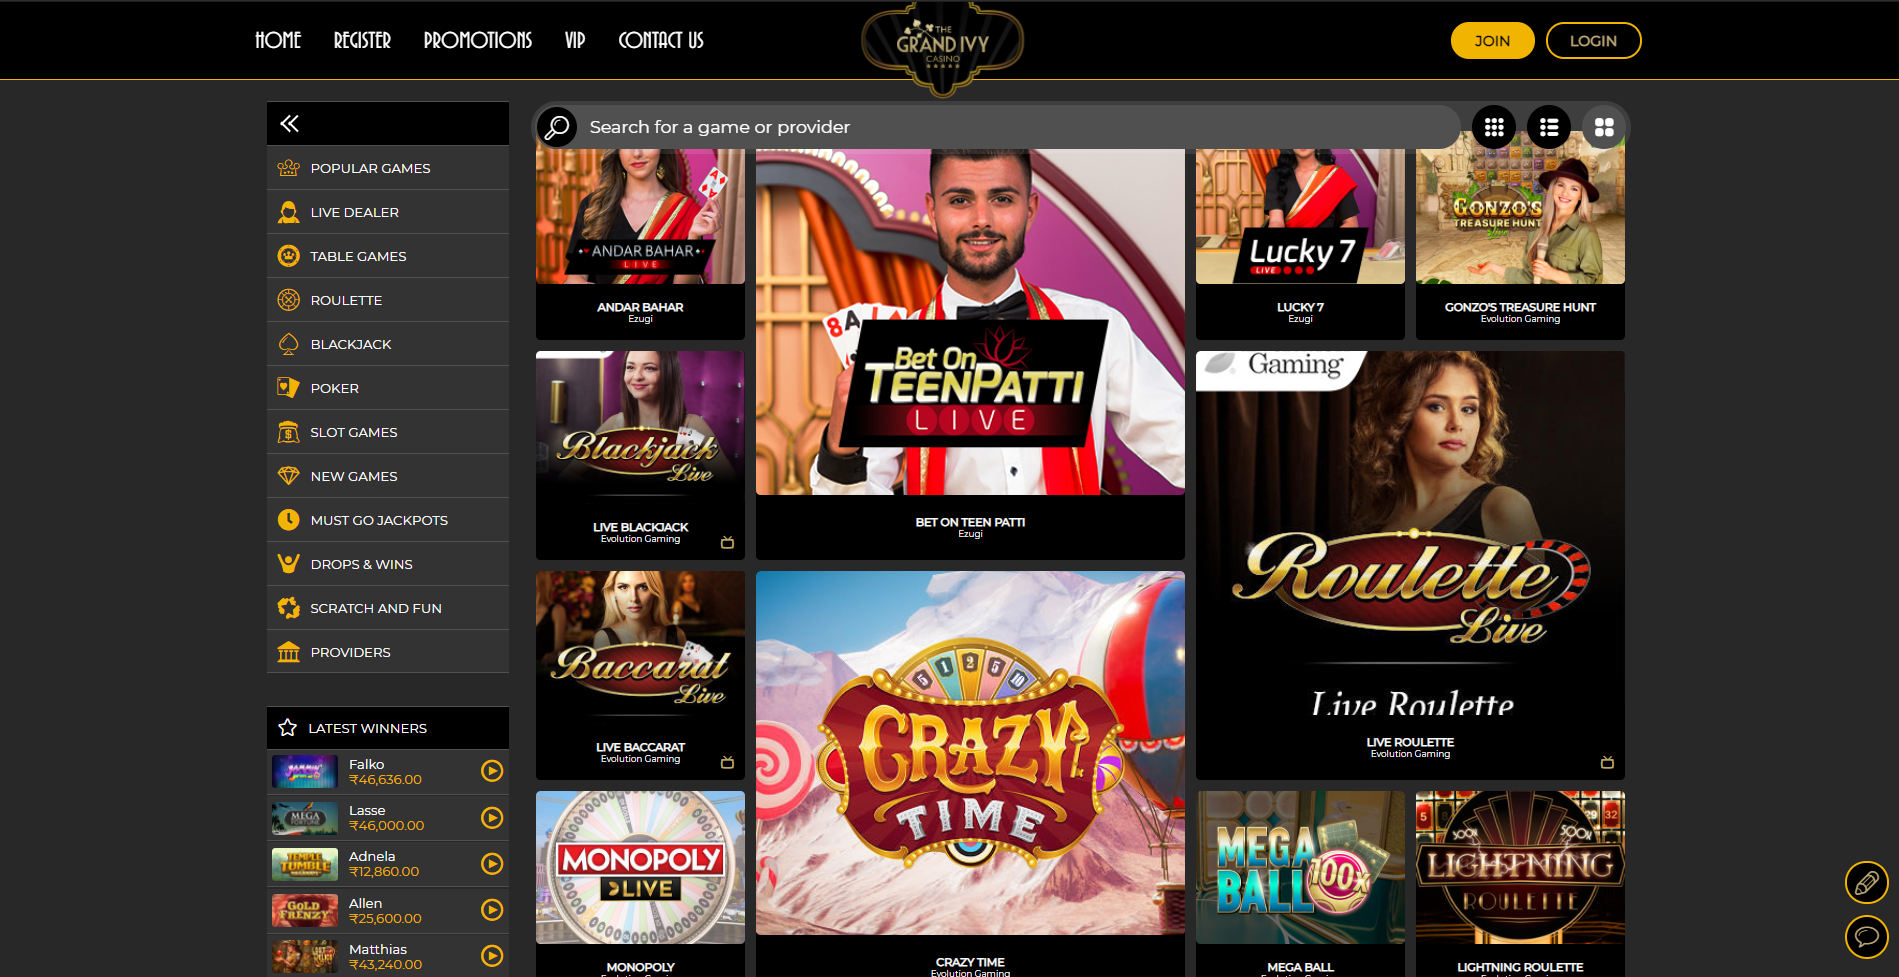 Grand Ivy Casino Review India